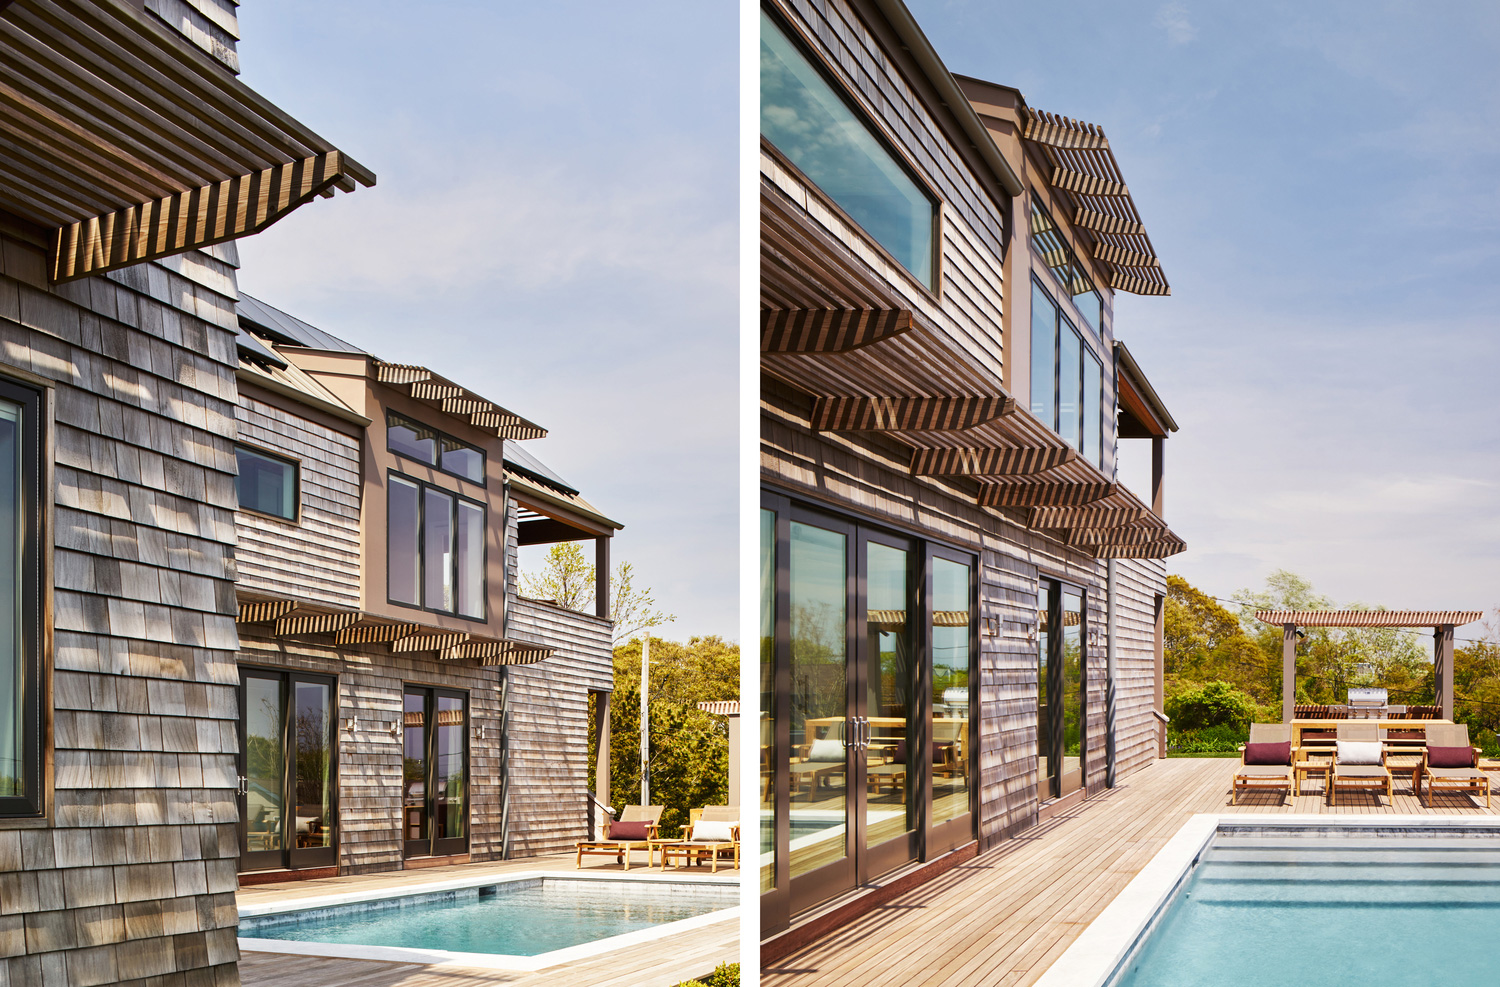 upside down house, bergdesign, montauk, hamptons houses